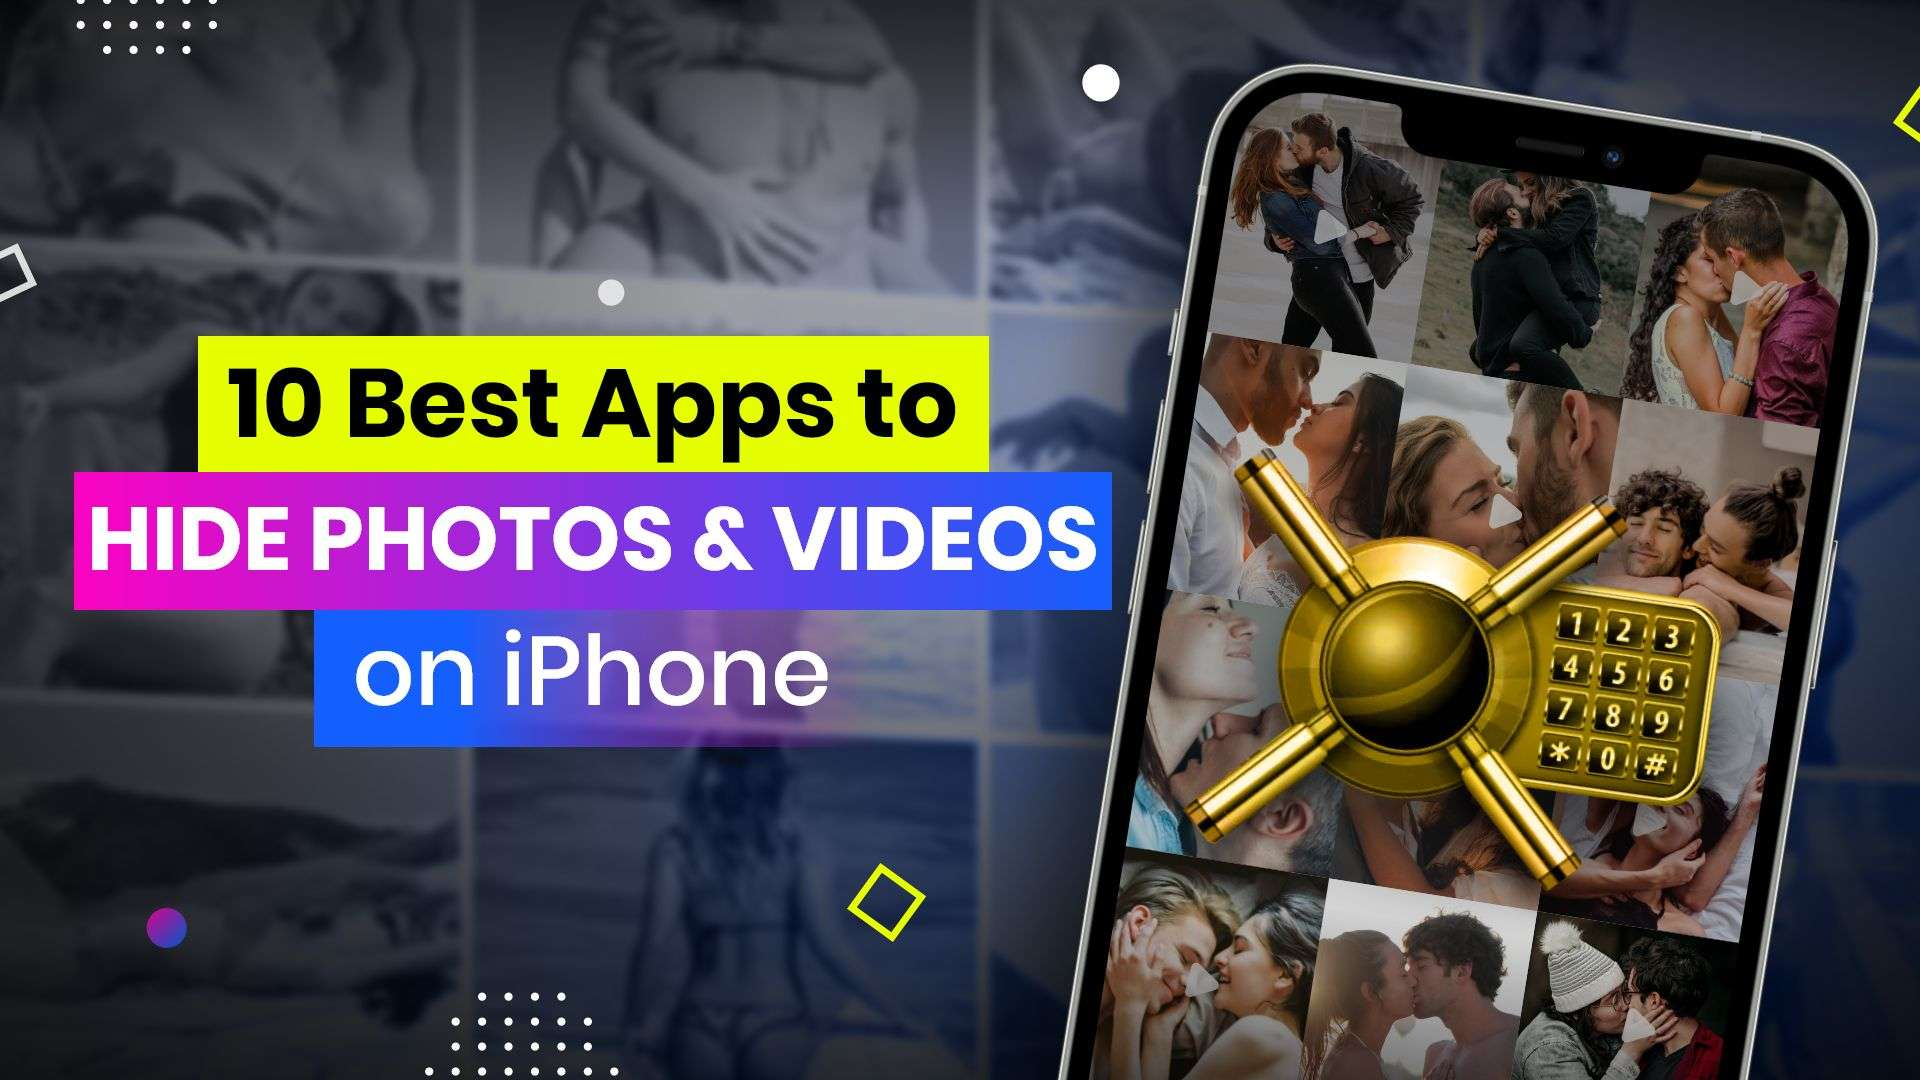 Apps to hide photos